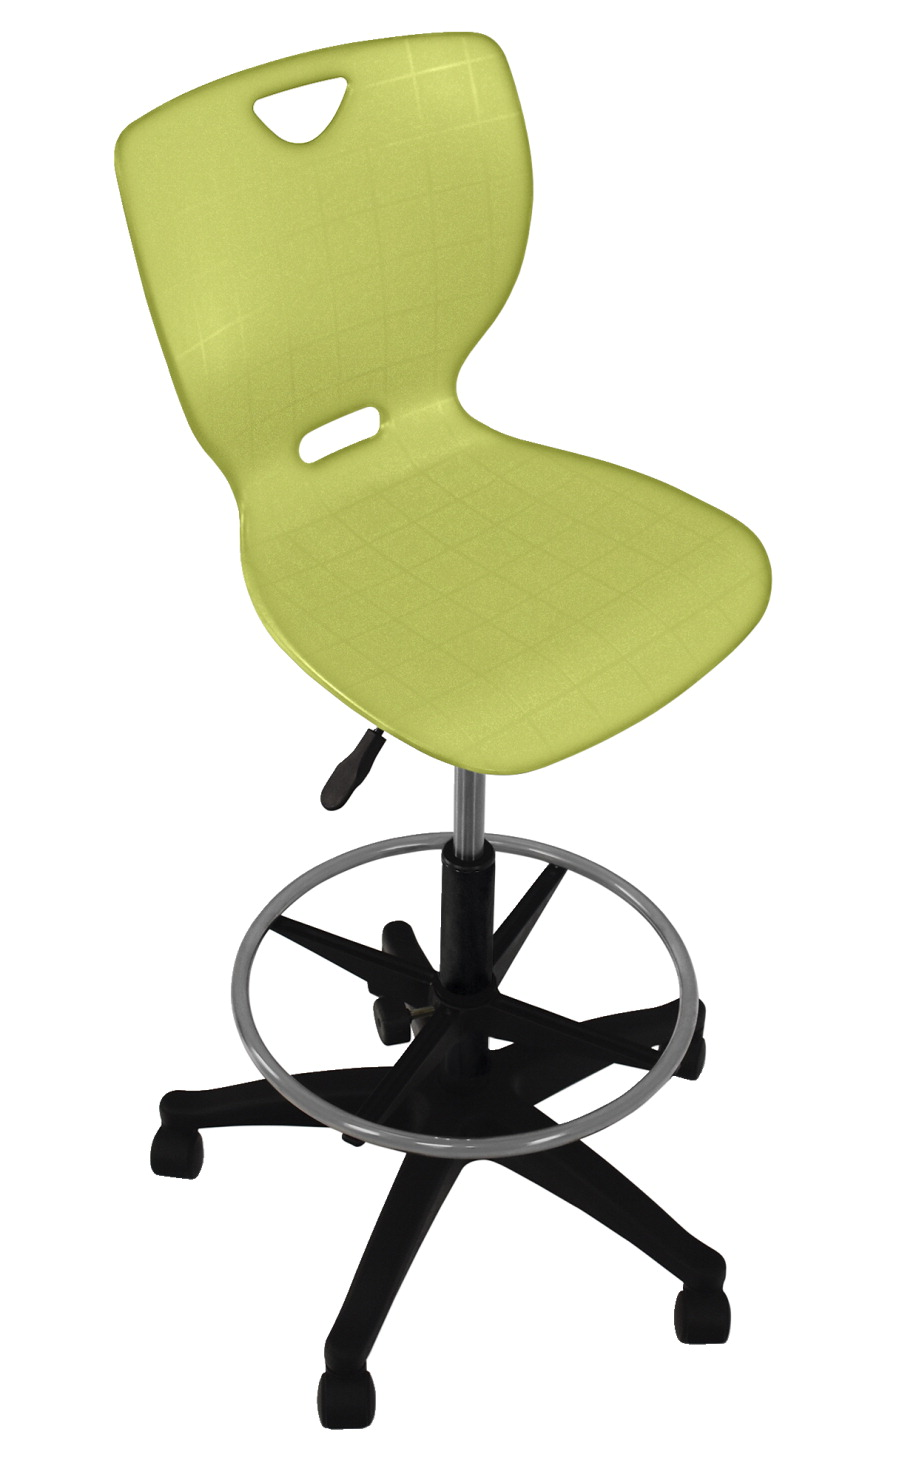 Classroom Select NeoClass Pneumatic Lift Chair with Adjustable Foot Ring, A+ Shell, Various Options